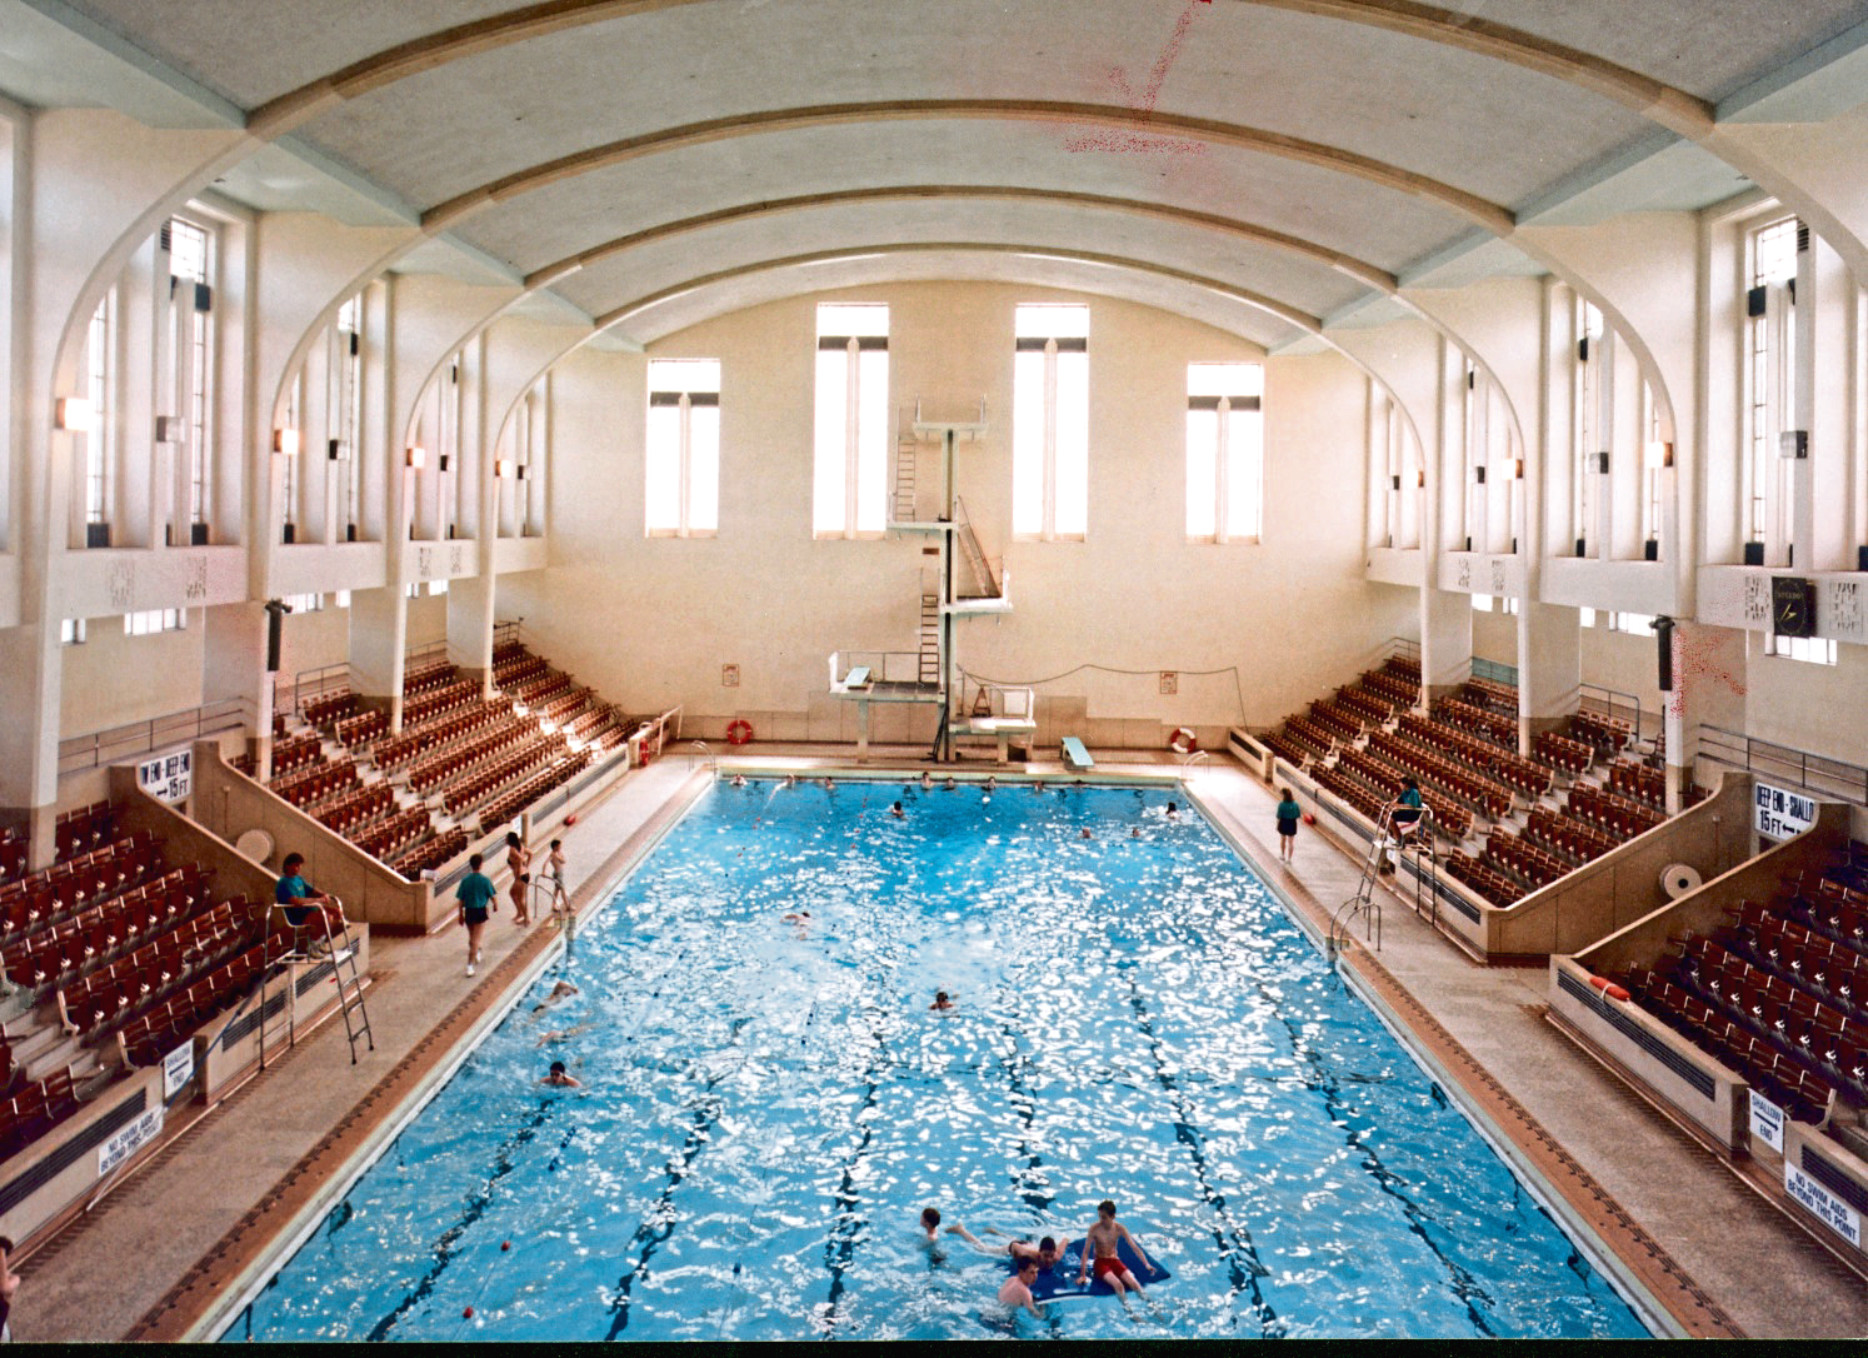 Bon Accord Baths and Leisure Centre when it was open